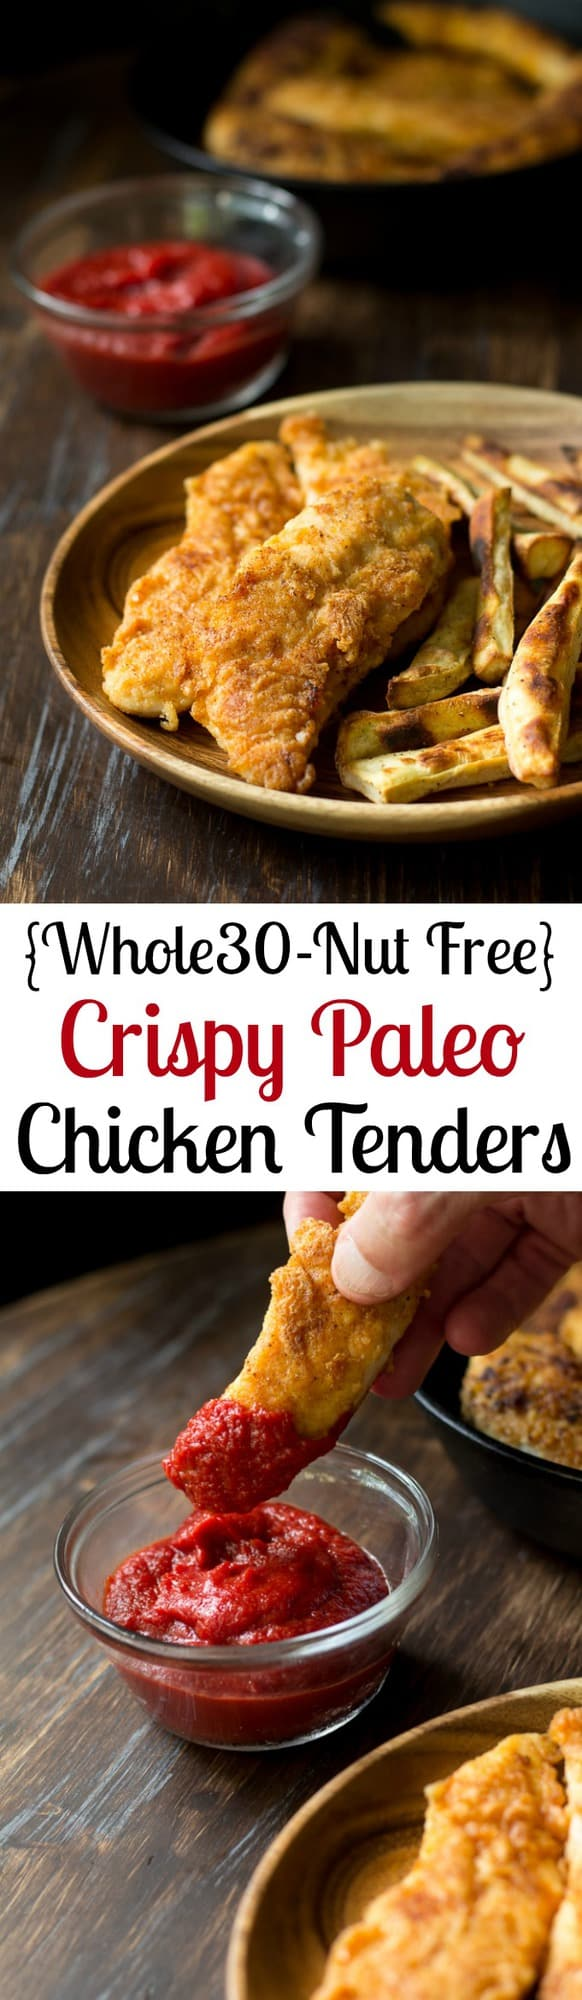 Crispy Paleo Chicken Tenders that are Whole30 friendly, and %22breaded%22 with a savory mixture of cassava, coconut flour and spices for amazing grain free, nut free crispy chicken tenders!